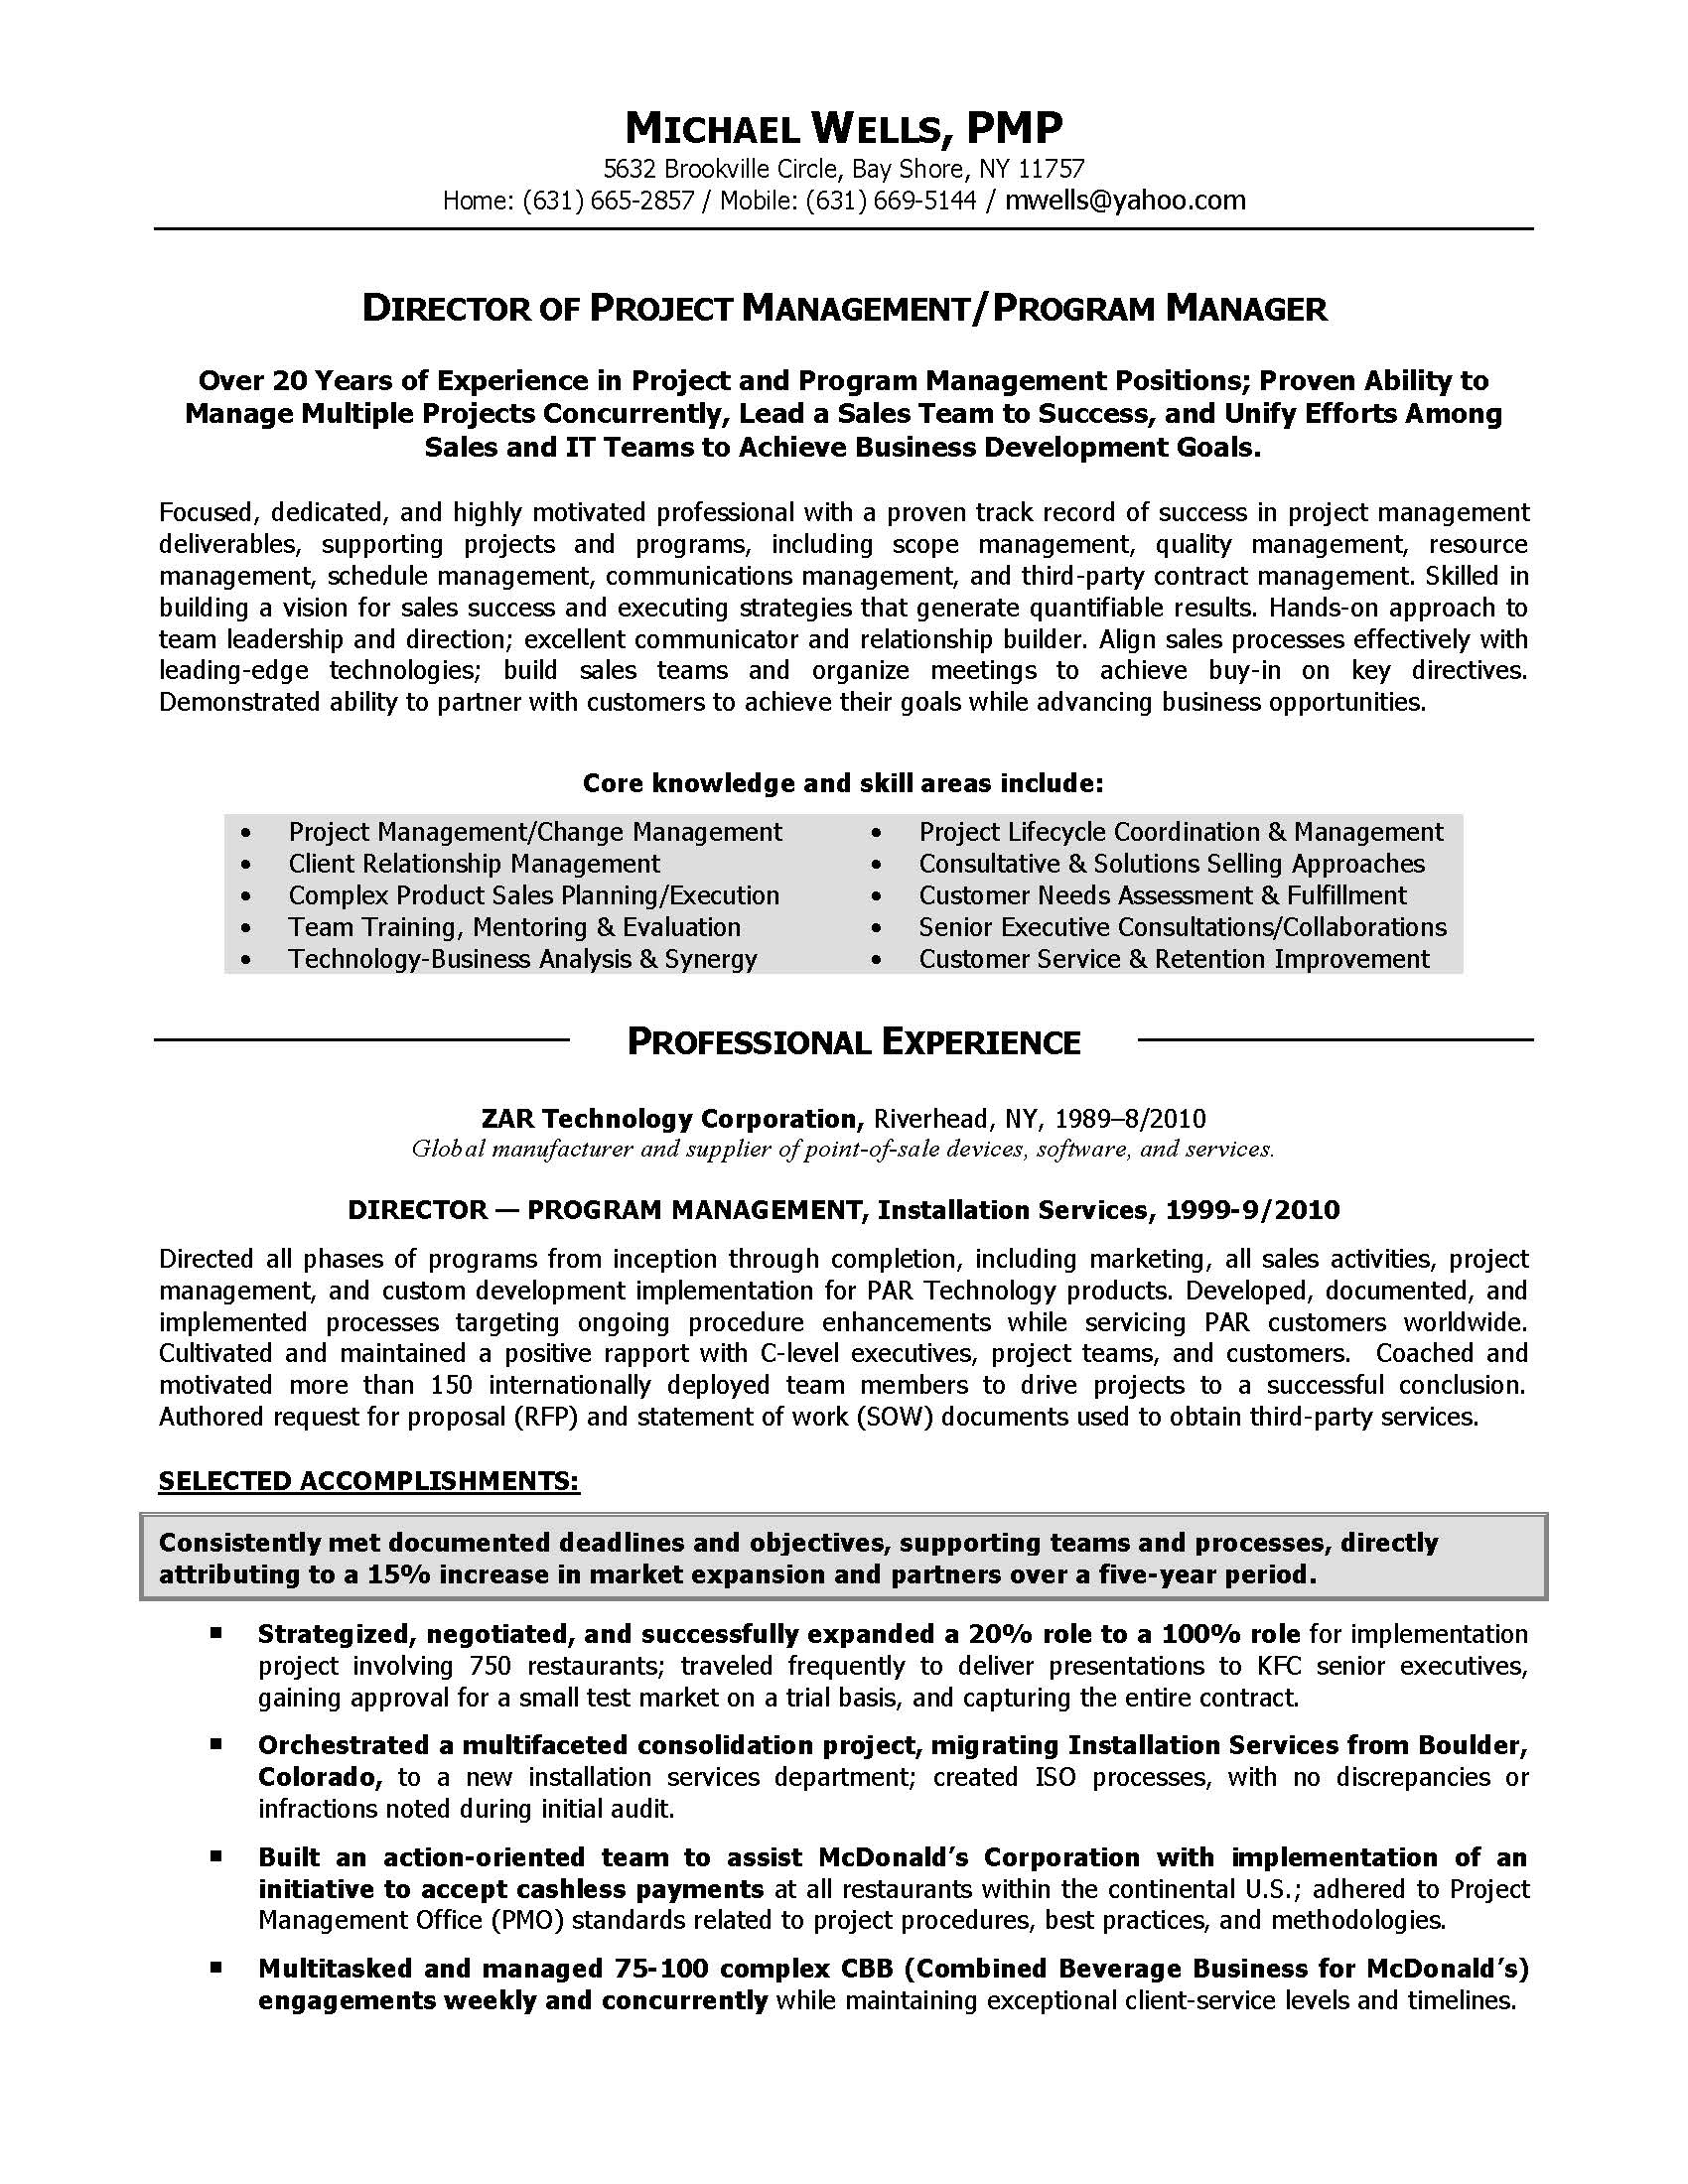 Project Management Director Resume Sample, Provided By Elite Resume Writing  Services  Managing Director Resume